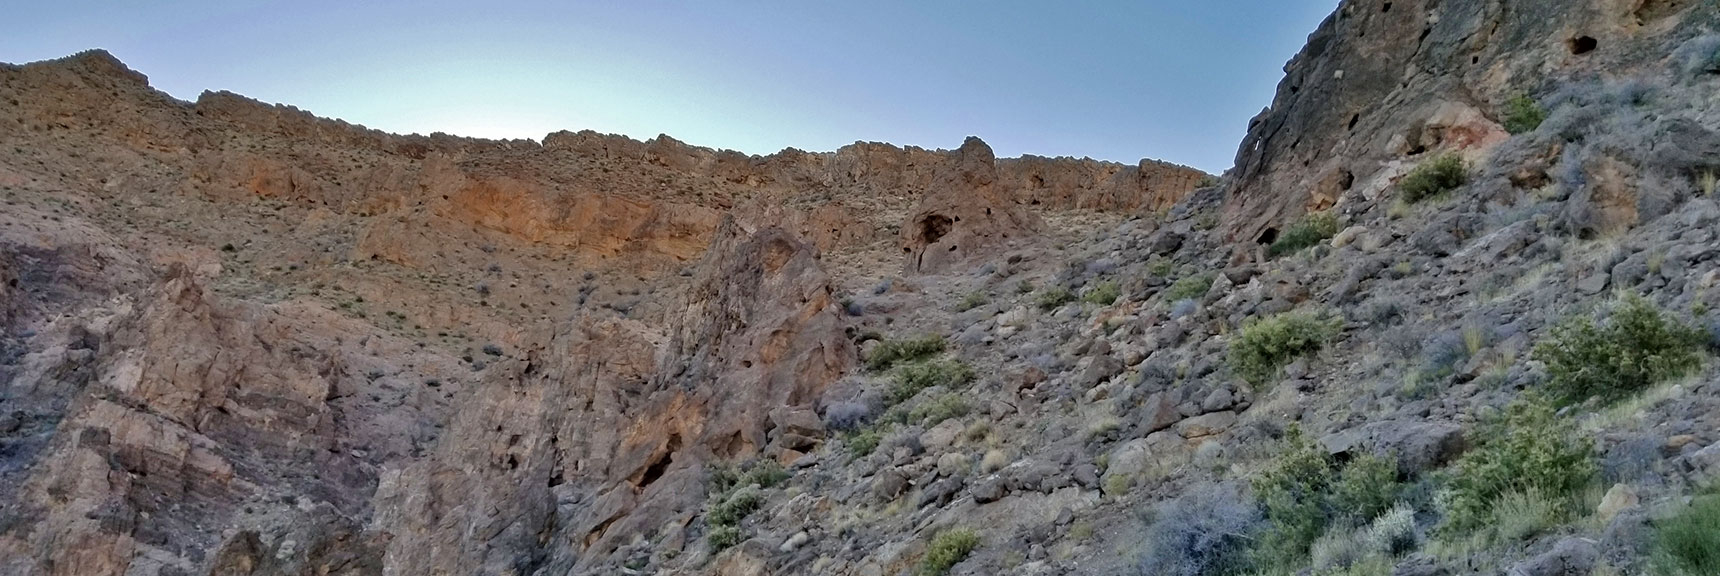 Pass in the Second Northern Ridge System in the Muddy Mountains Wilderness, Nevada